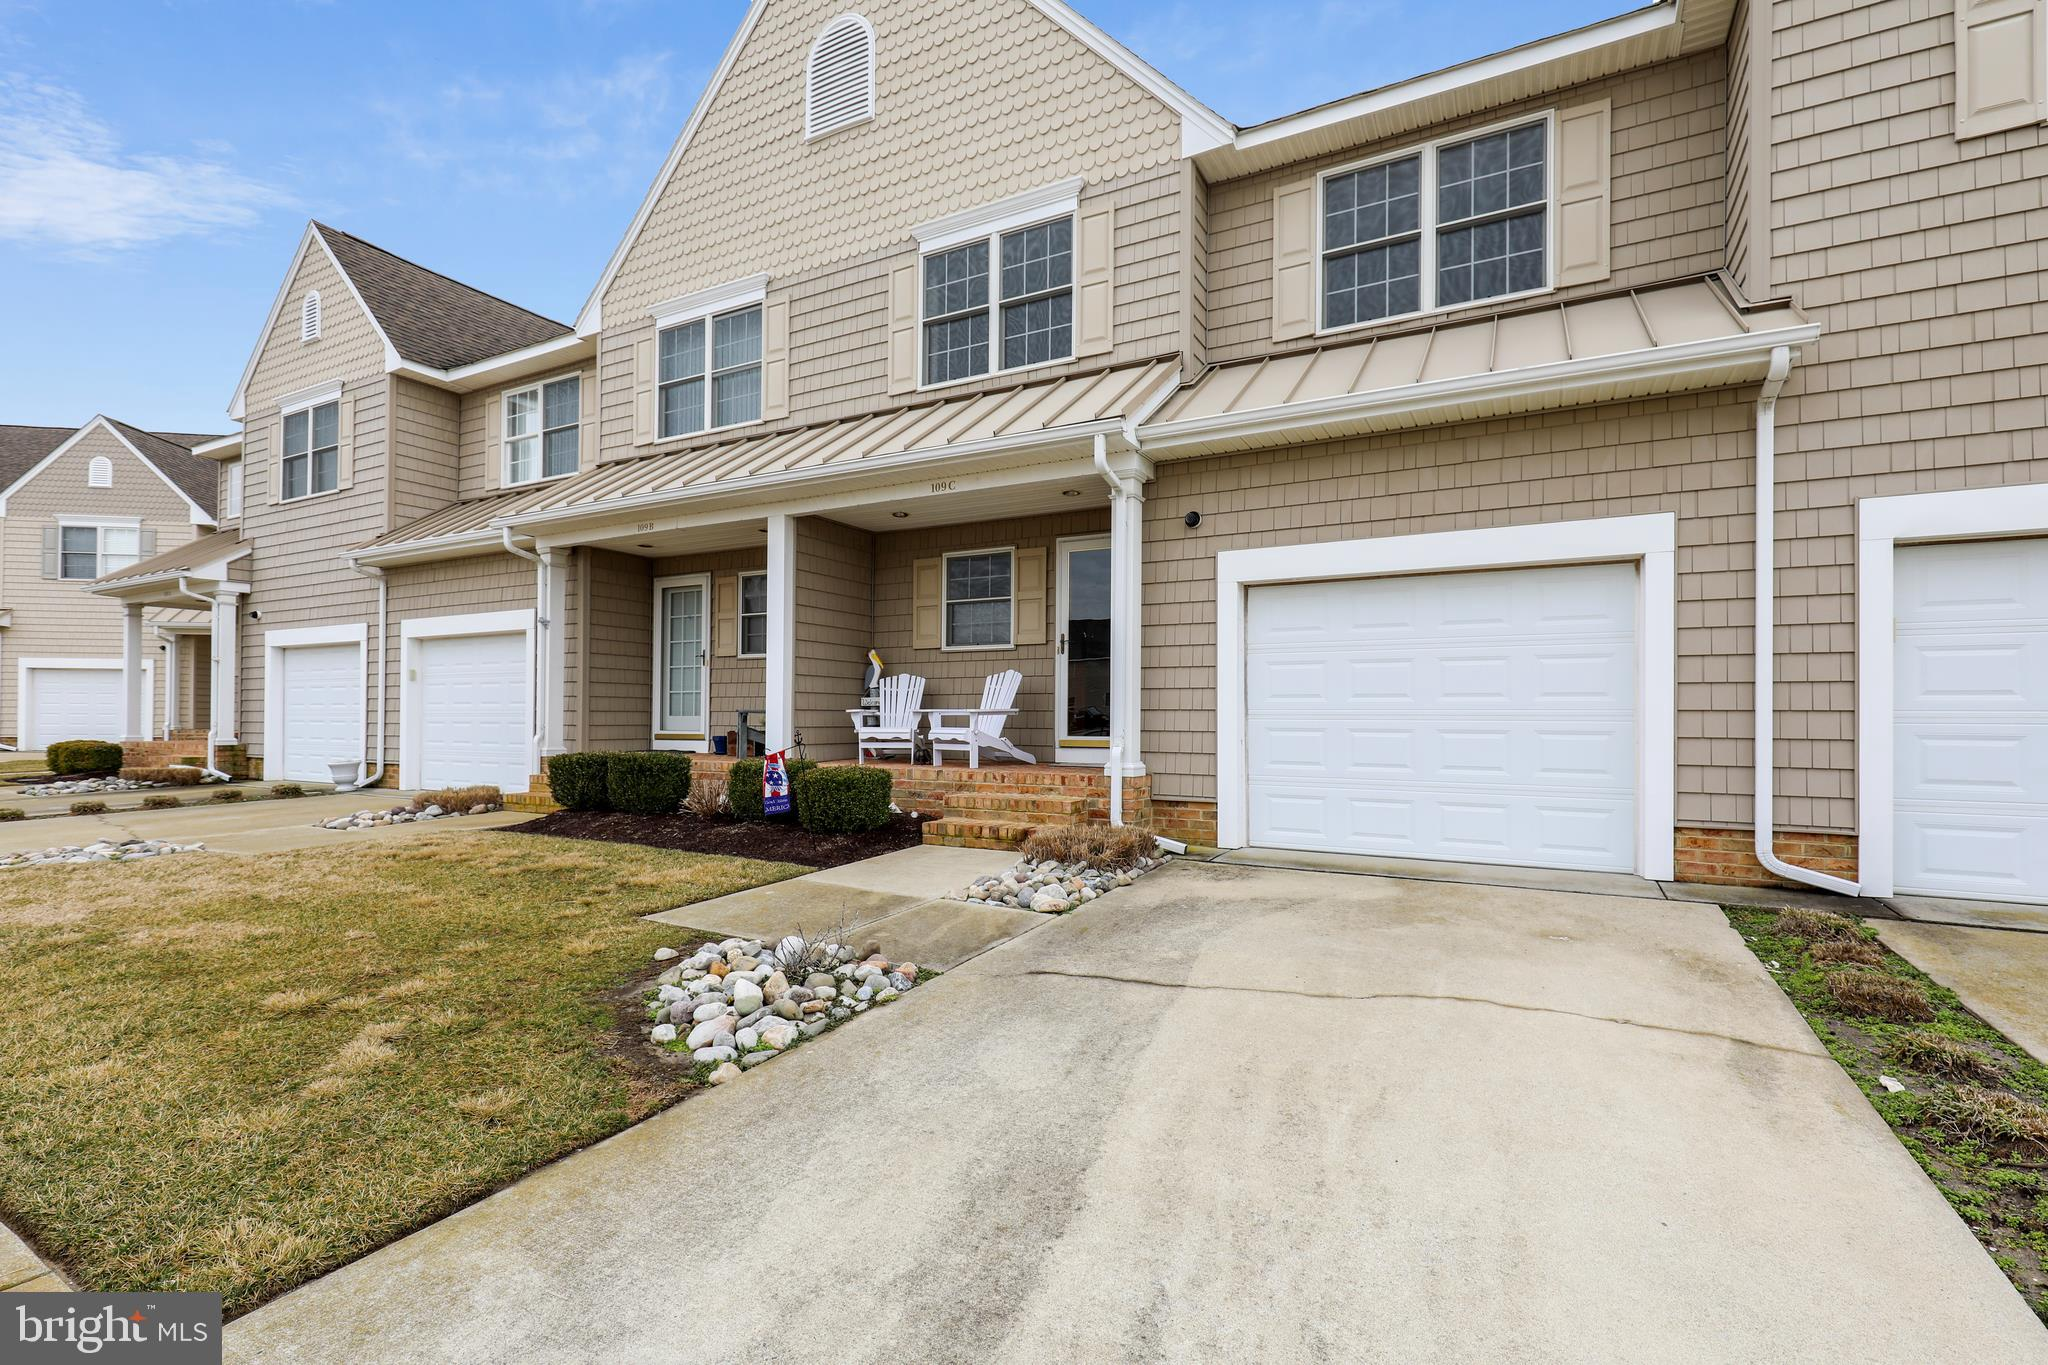 109 WATERS EDGE DRIVE 109C, CRISFIELD, MD 21817